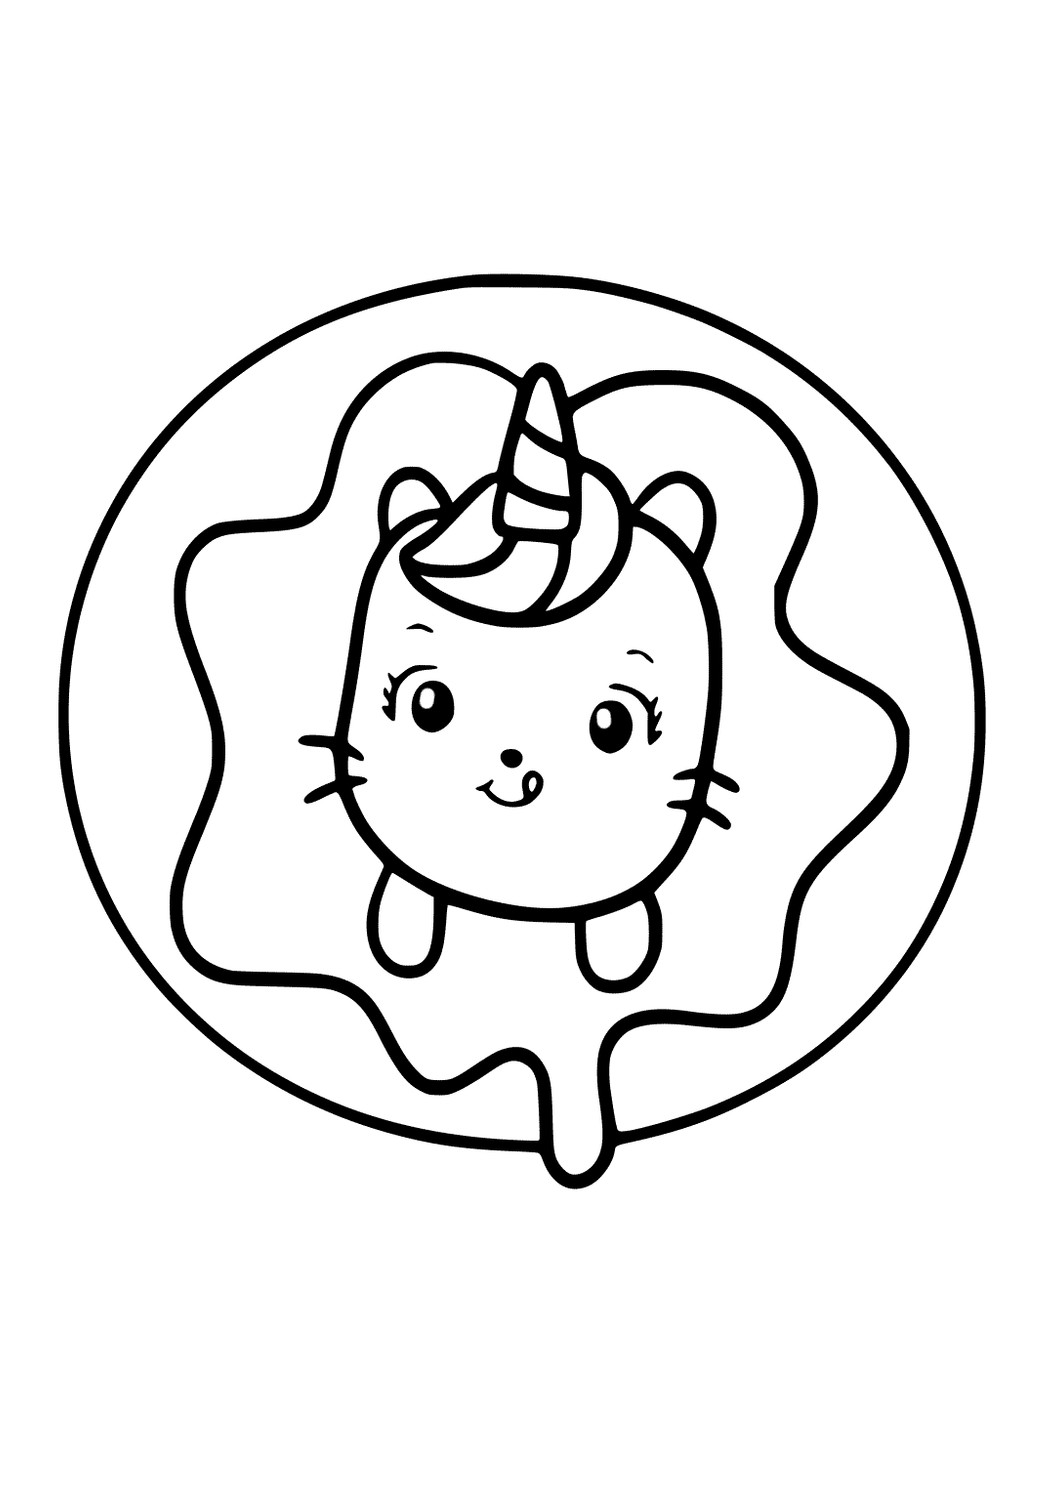 Donut Caticorn Coloring Page